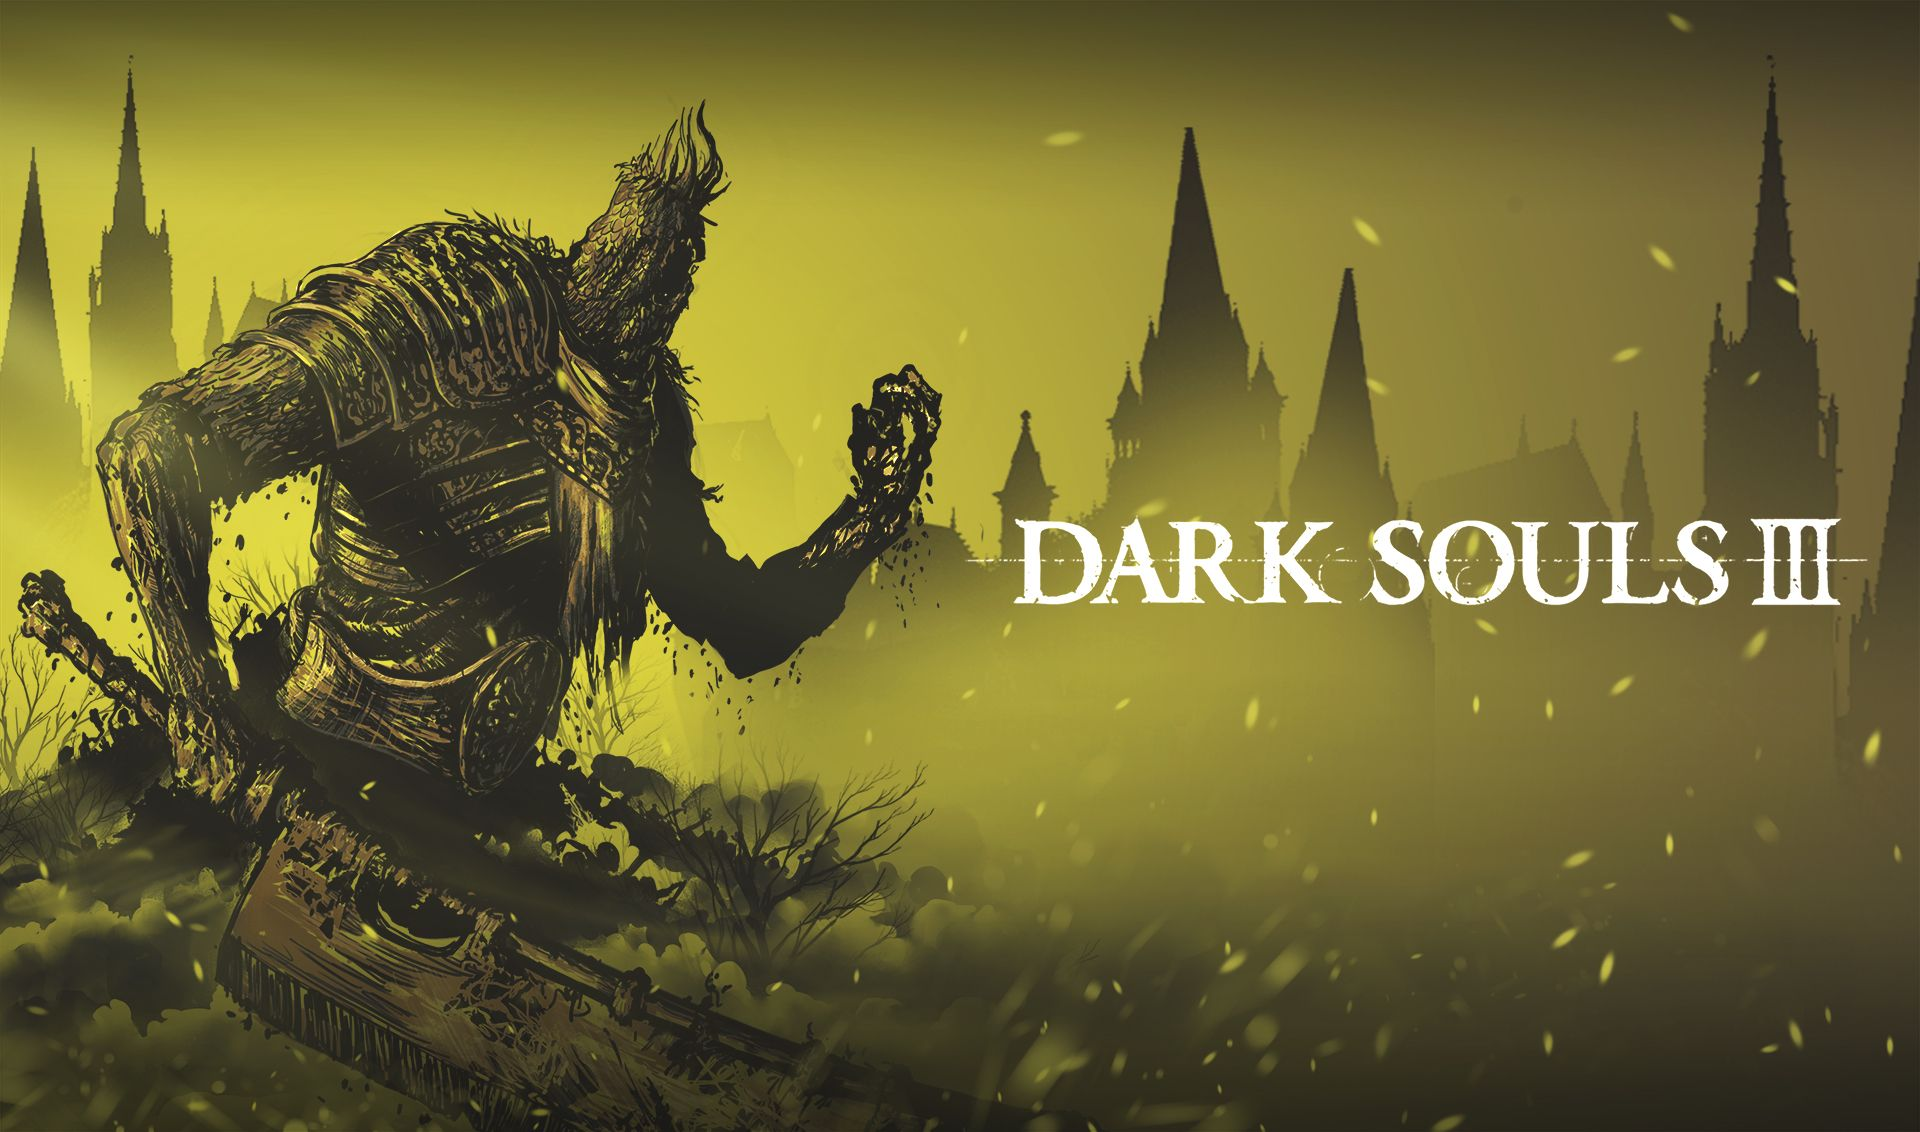 Dark Souls 3 Yhorm The Giant Wallpaper Unofficial ダークソウル